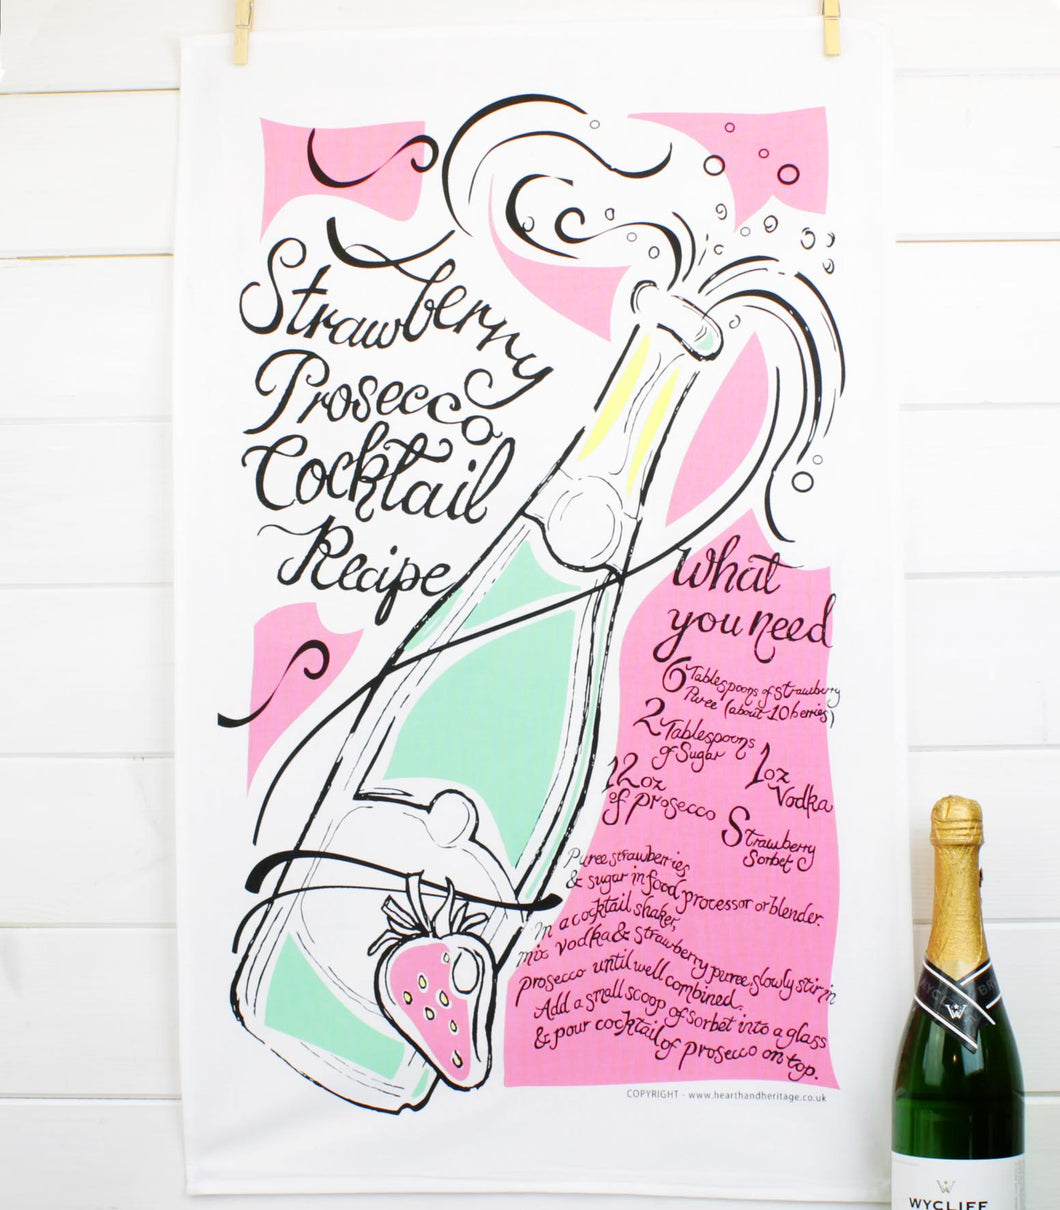 prosecco cocktail recipe teatowel